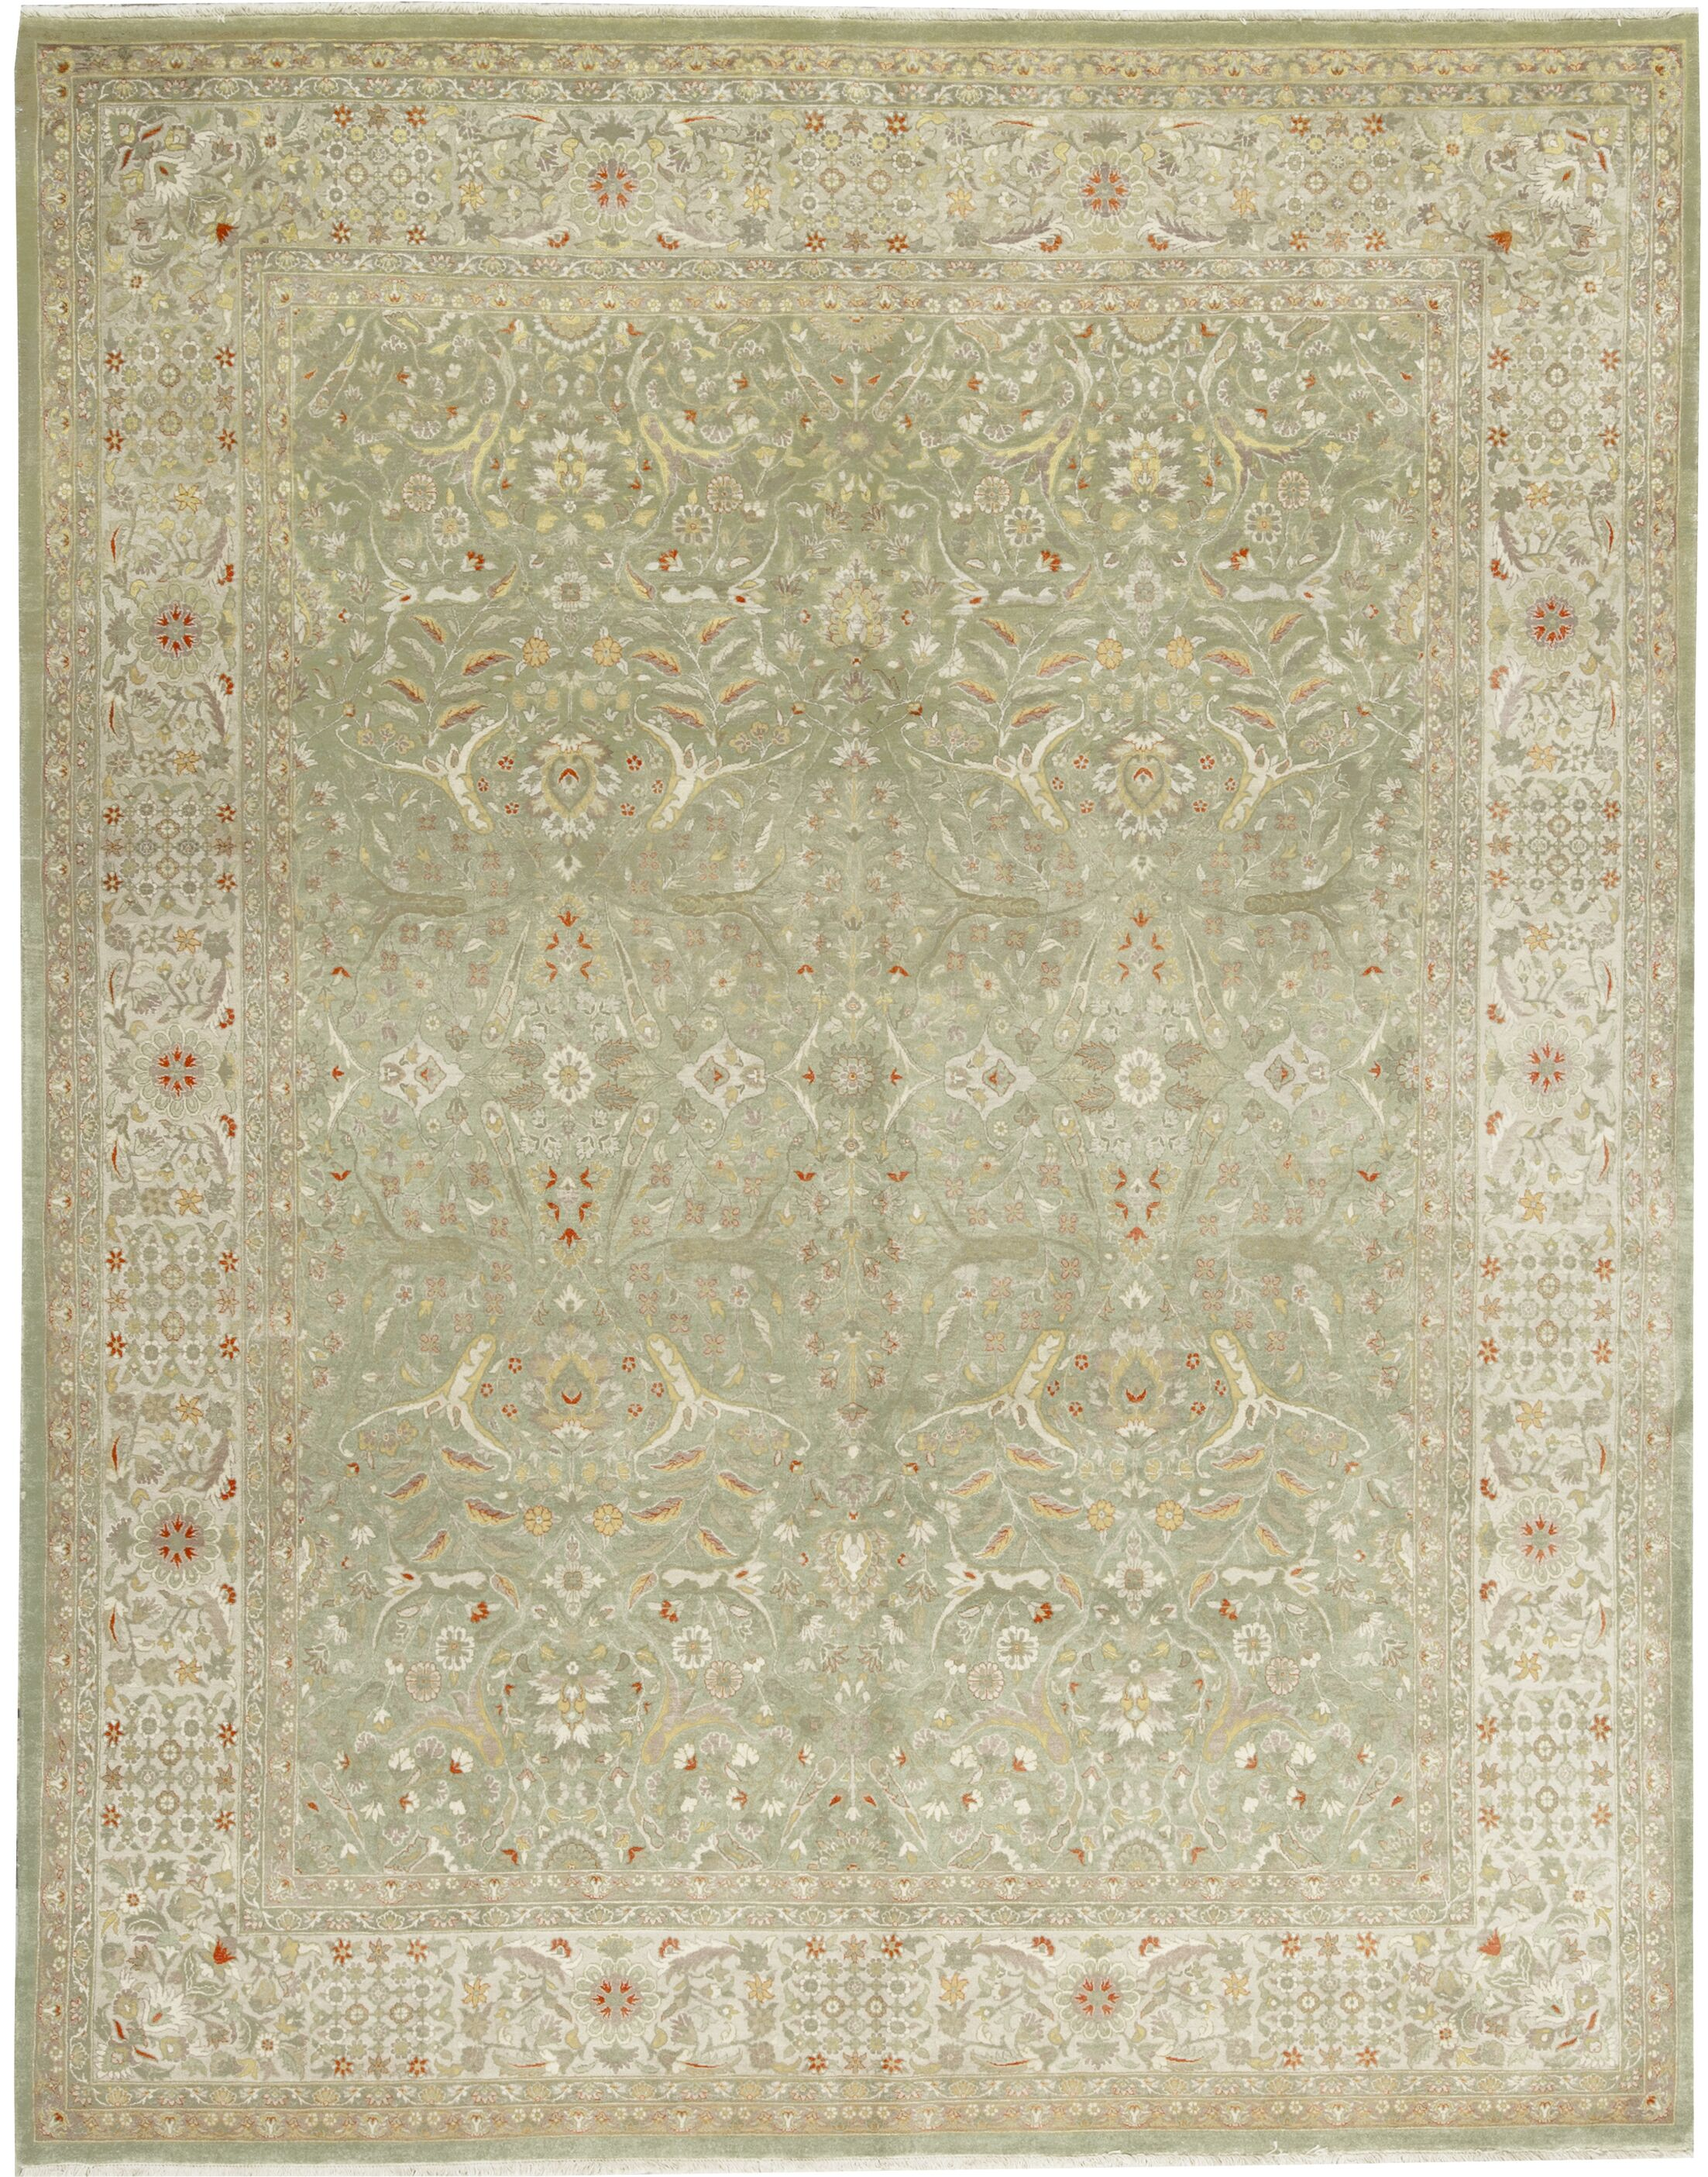 One-of-a-Kind Hand-Knotted Wool Olive Green Area Rug